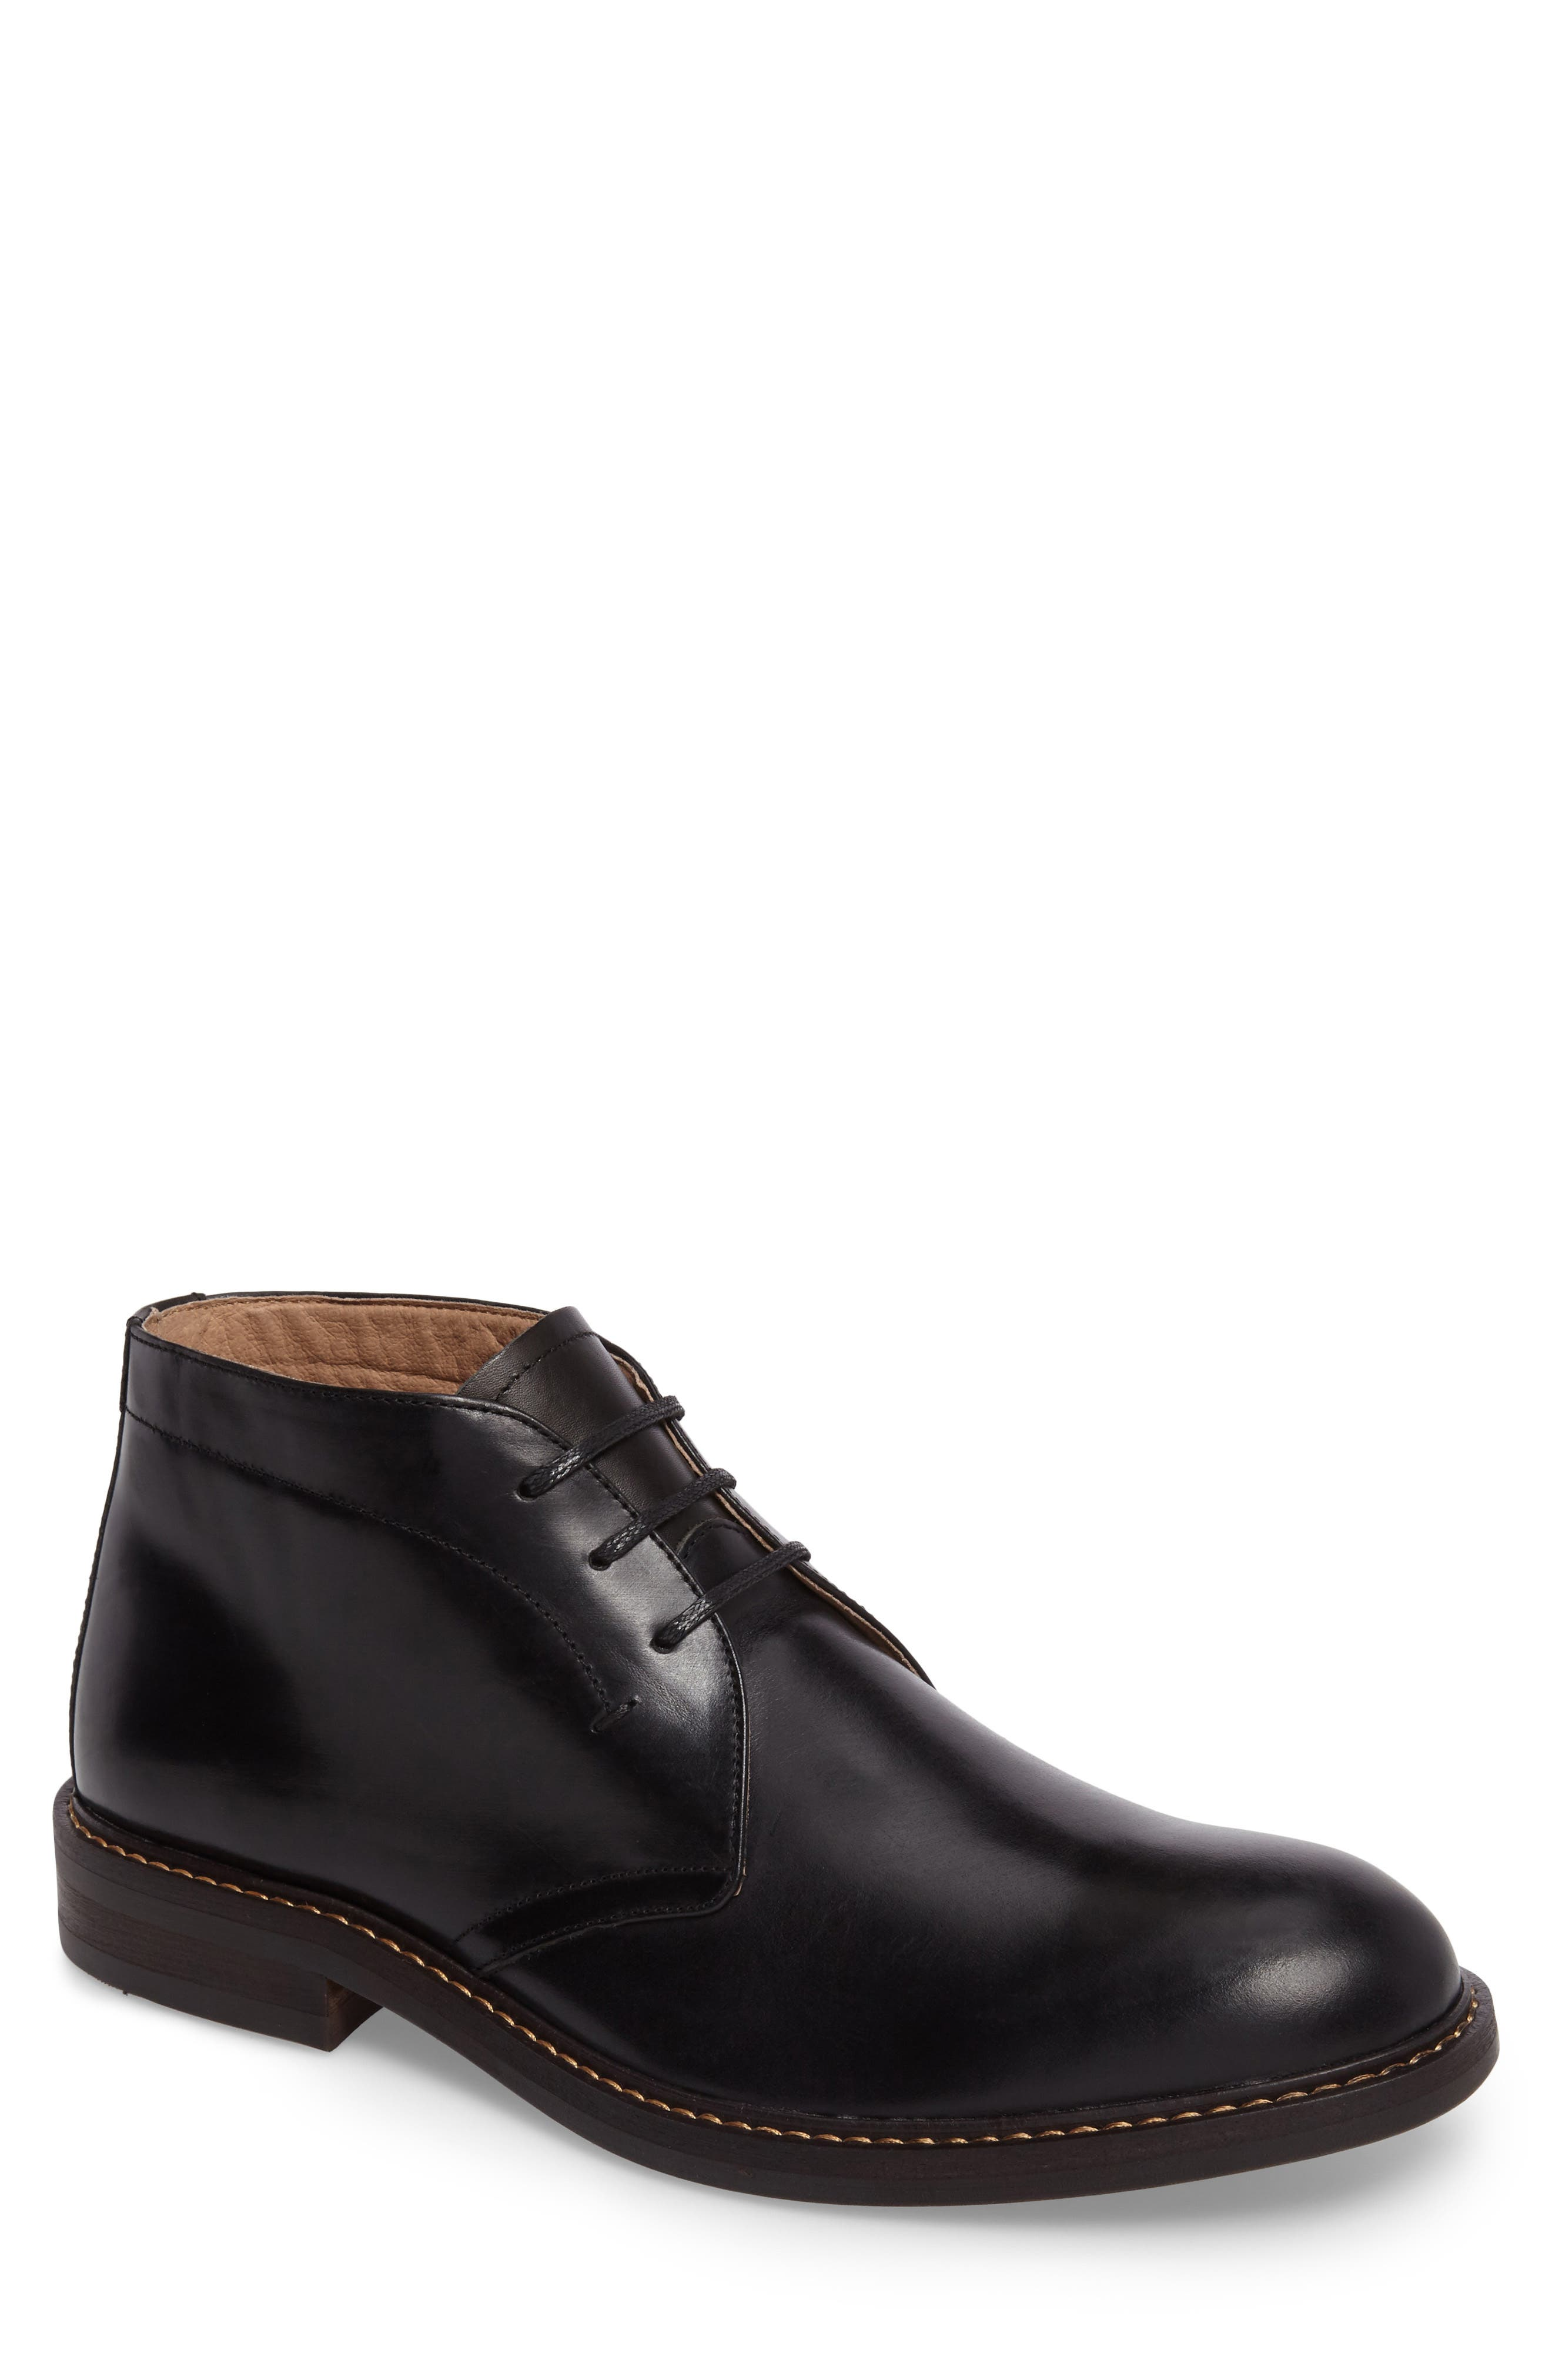 Barrett Chukka Boot,                         Main,                         color, 001